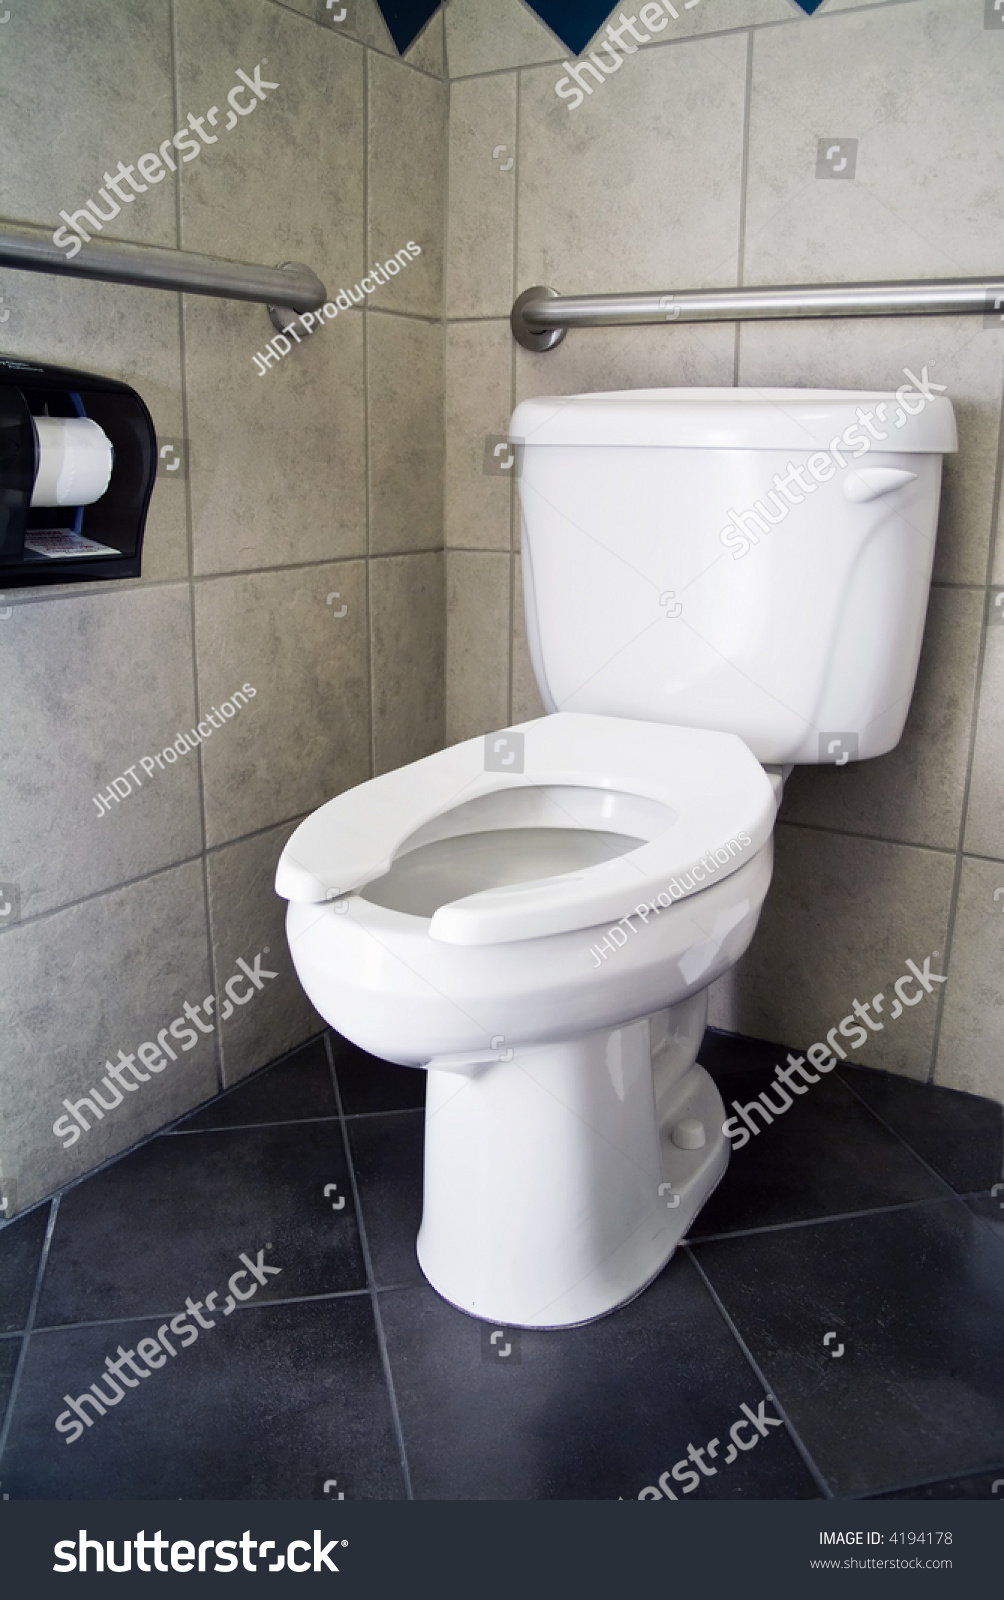 Picture Commode No Lid Handicap Accommodations Stock Photo 4194178 ...